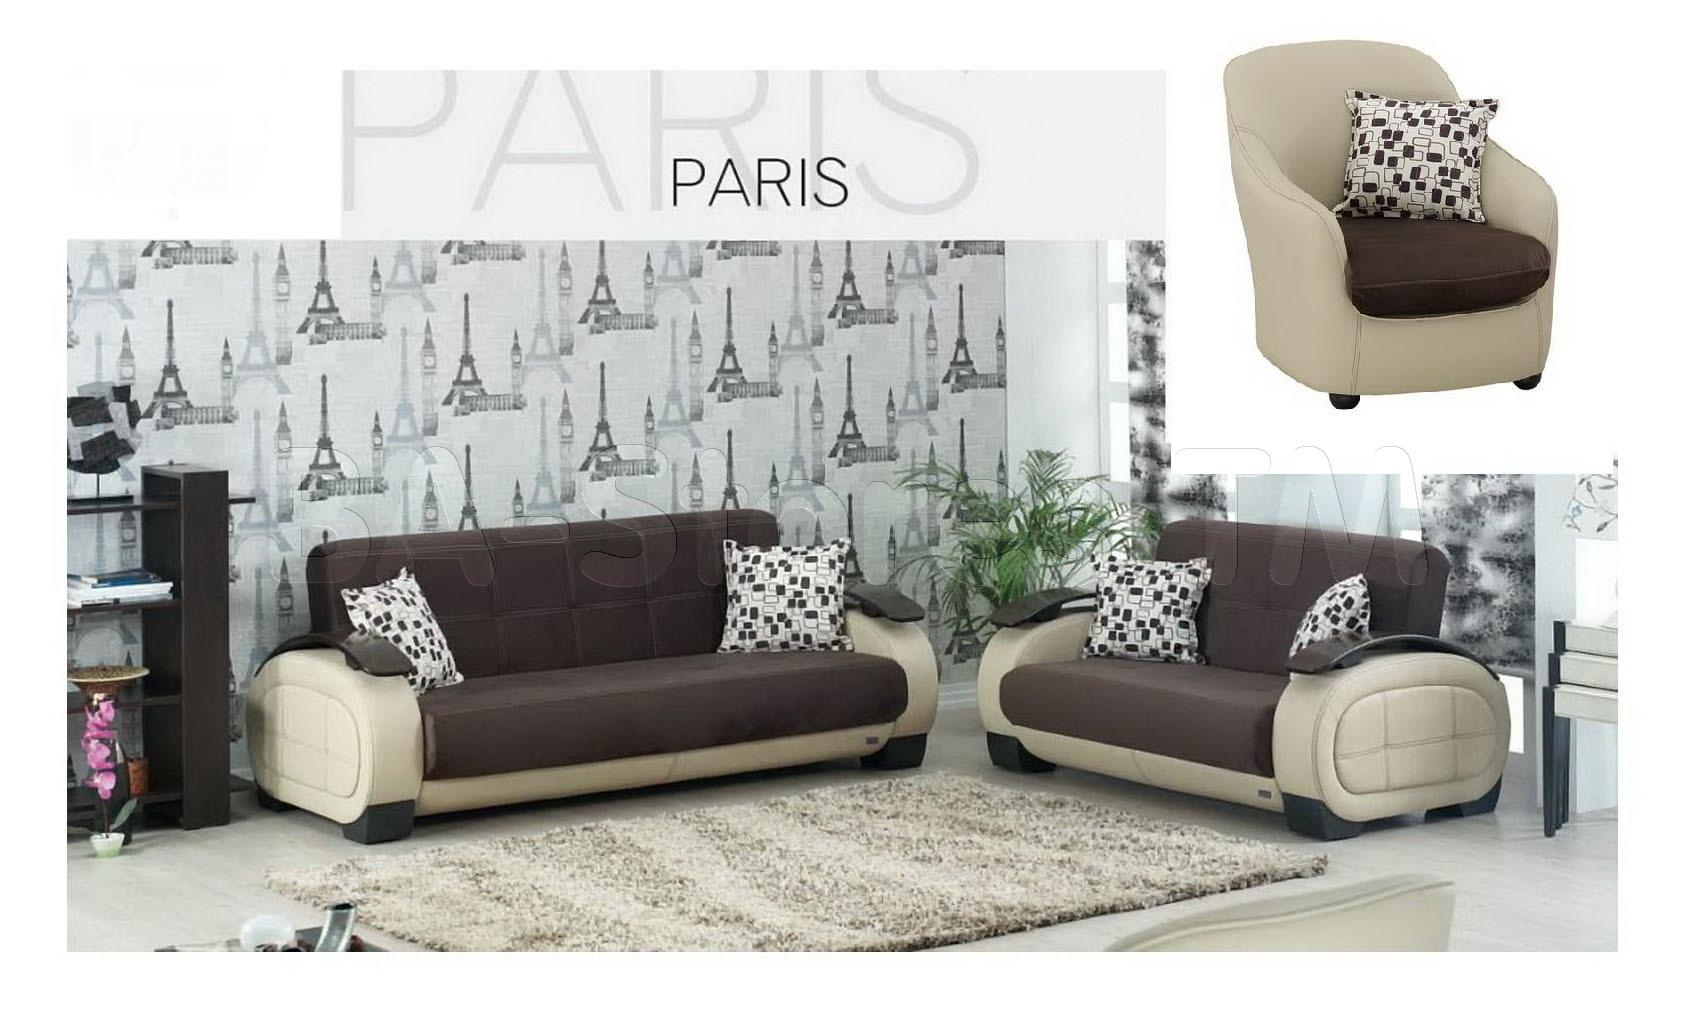 664D31585D6E363D20982Dcc6Ecd90C4 For Elegant Sofa Chair - Home in Elegant Sofas and Chairs